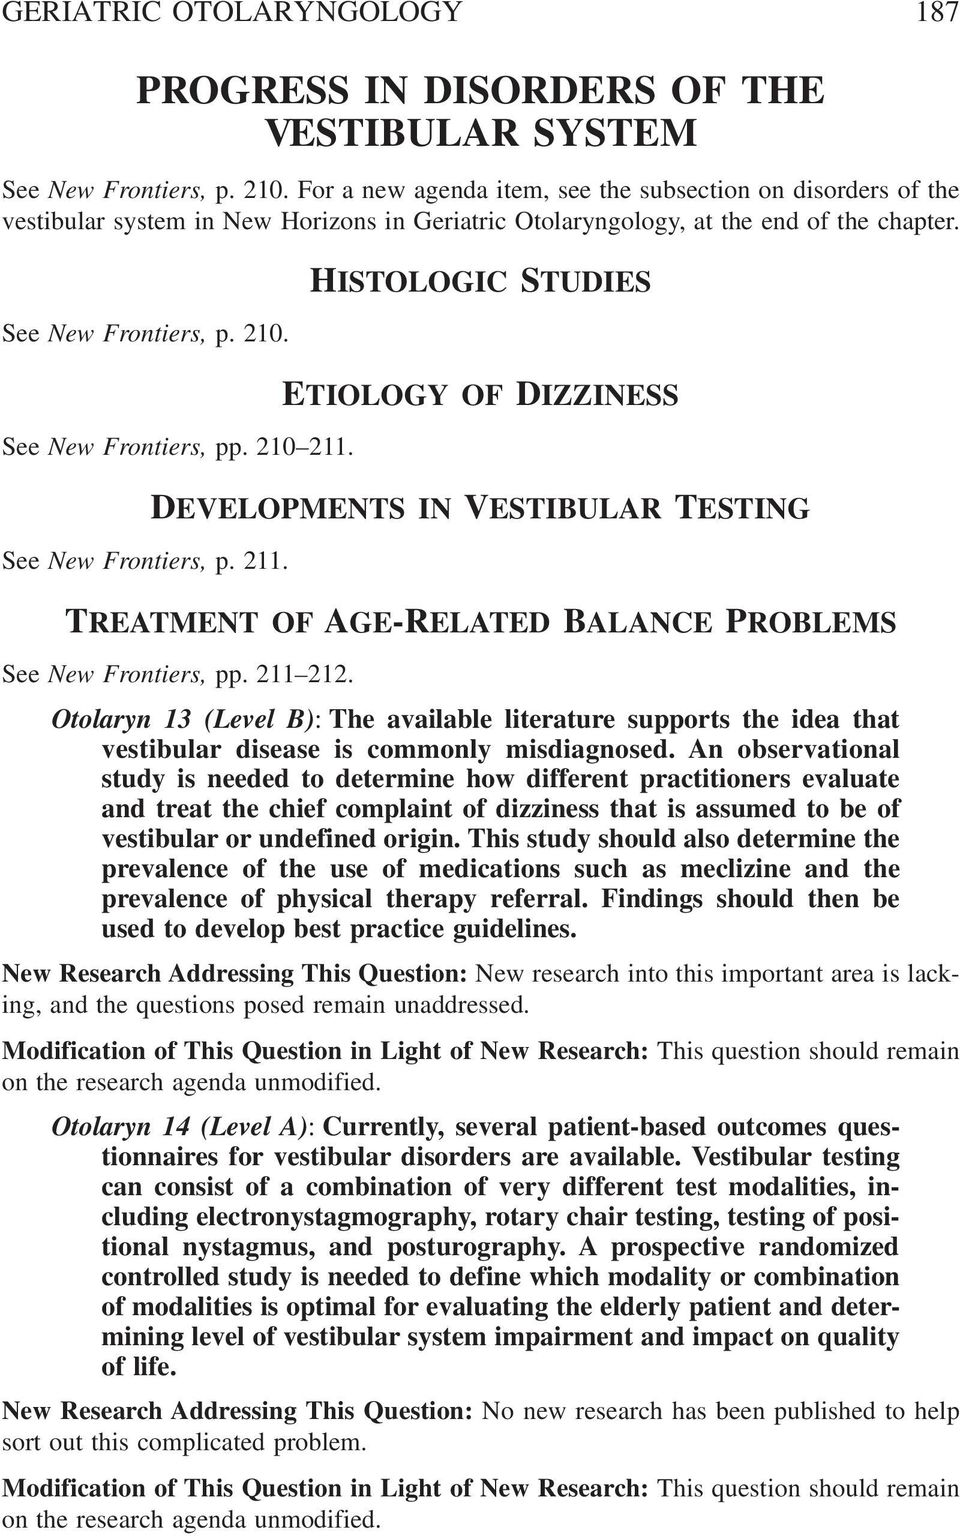 See New Frontiers, pp. 210 211. See New Frontiers, p. 211. HISTOLOGIC STUDIES ETIOLOGY OF DIZZINESS DEVELOPMENTS IN VESTIBULAR TESTING TREATMENT OF AGE-RELATED BALANCE PROBLEMS See New Frontiers, pp.